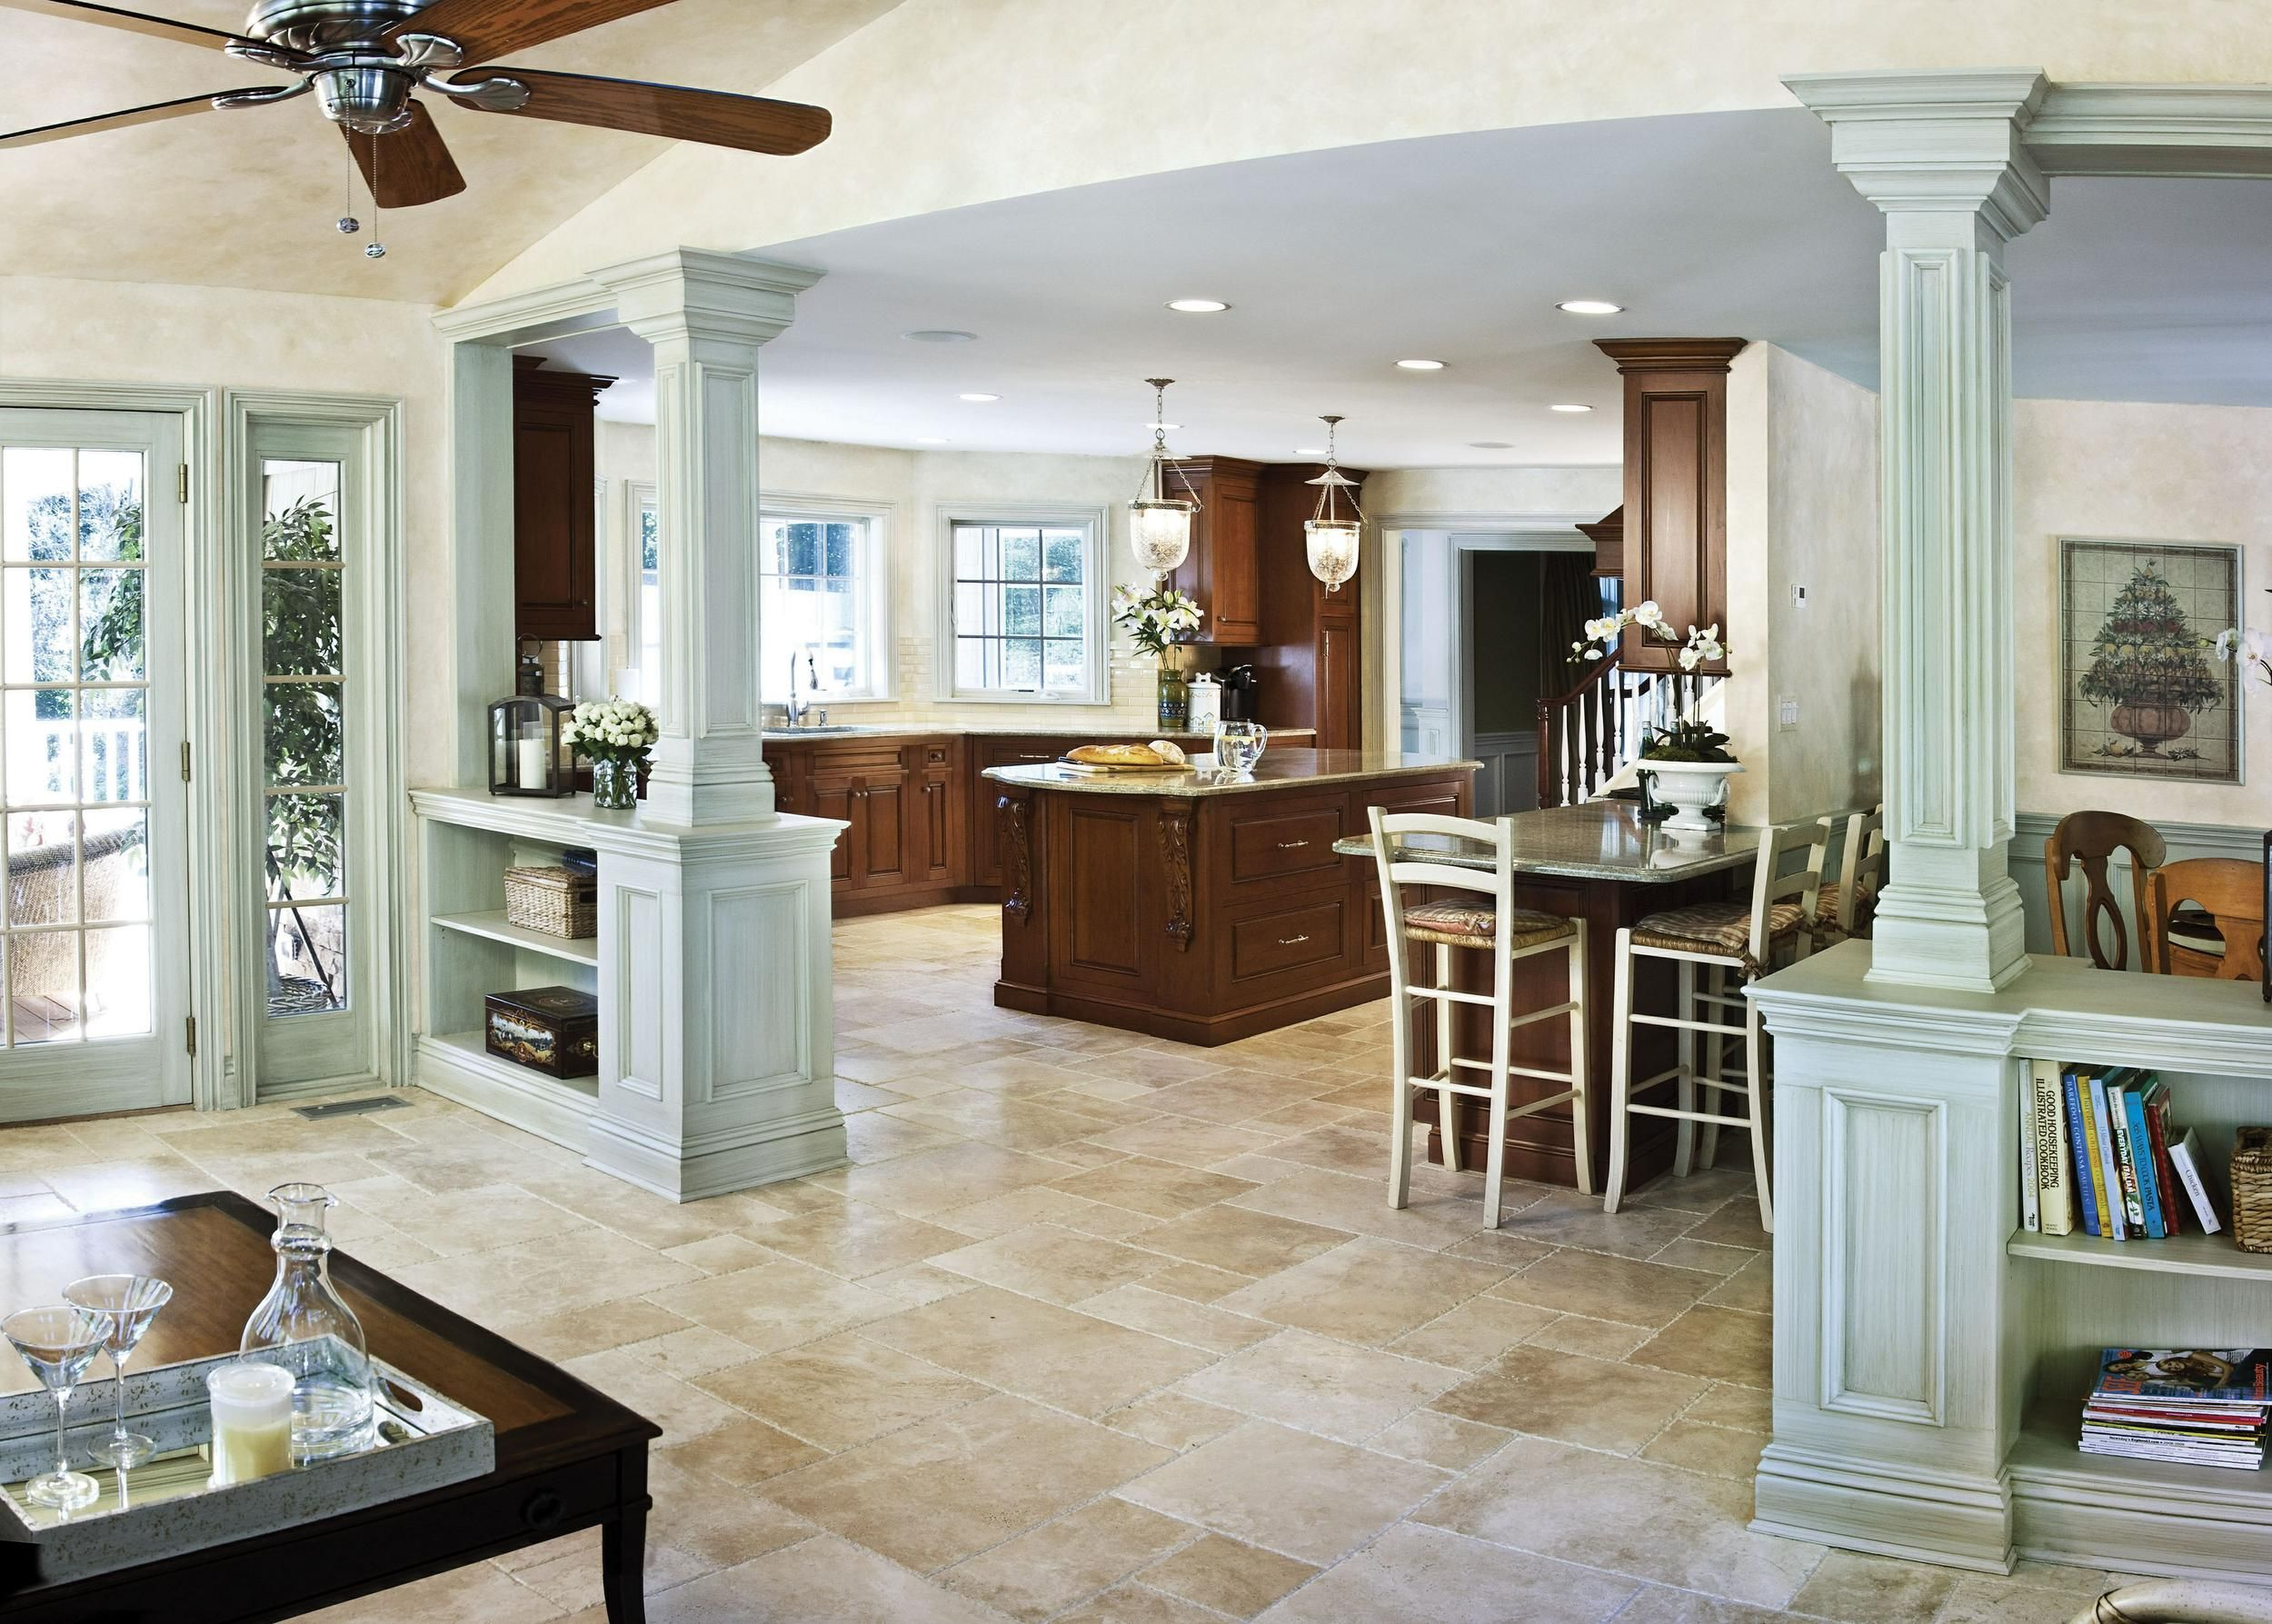 Pin By Michelle Langworthy On Basement Remodel In 2020 Open Concept Kitchen Living Room Knock Down Wall Half Wall Room Divider